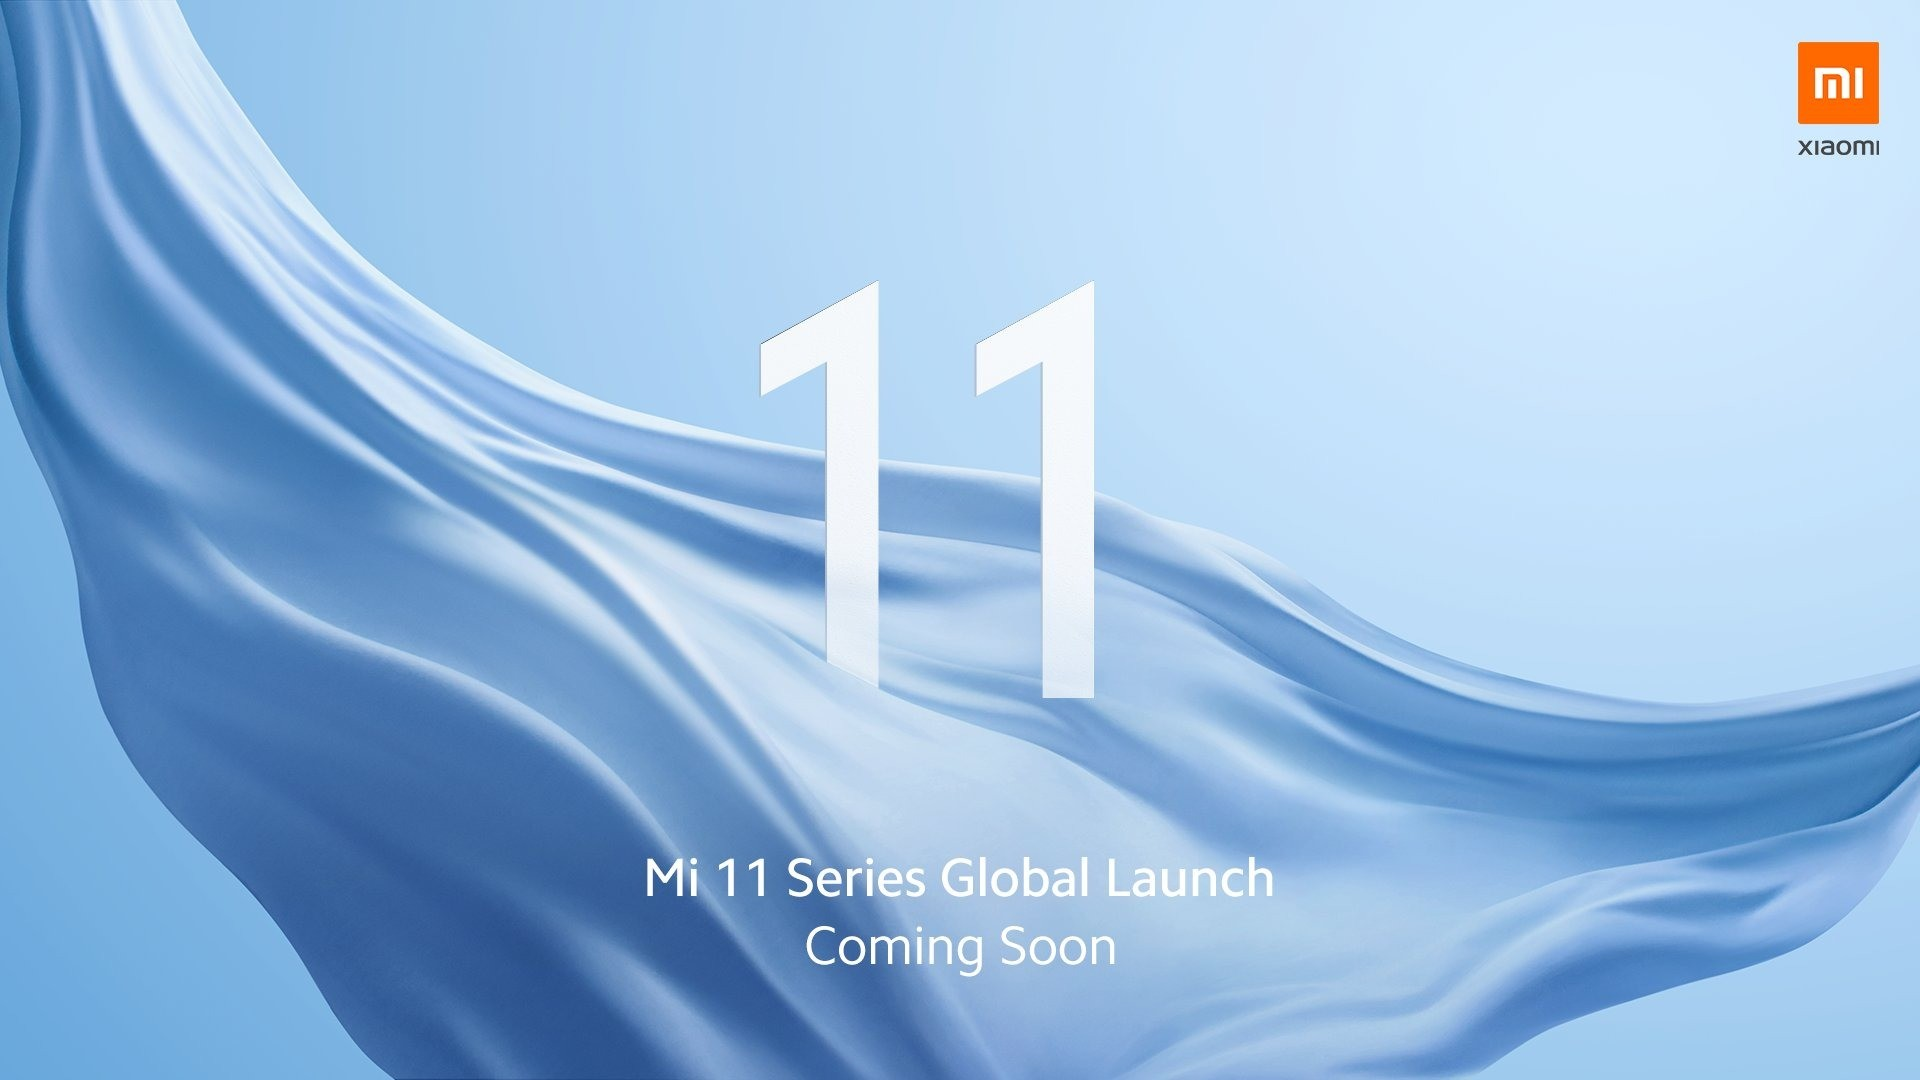 Cell phone without charger: Xiaomi M11 will not include it